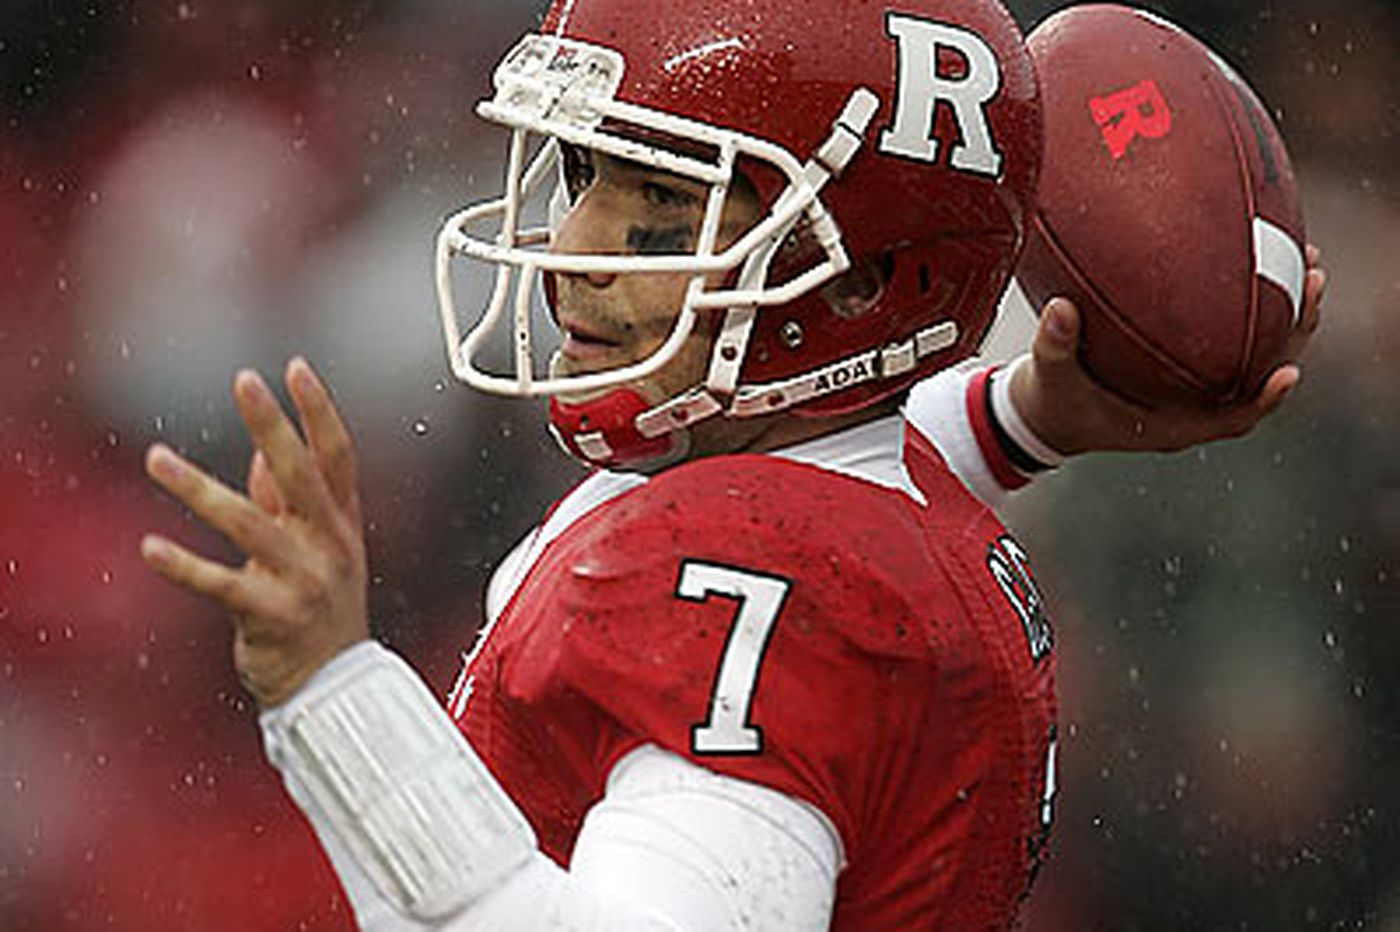 Quarterback Tom Savage is appealing blocked transfers from Rutgers